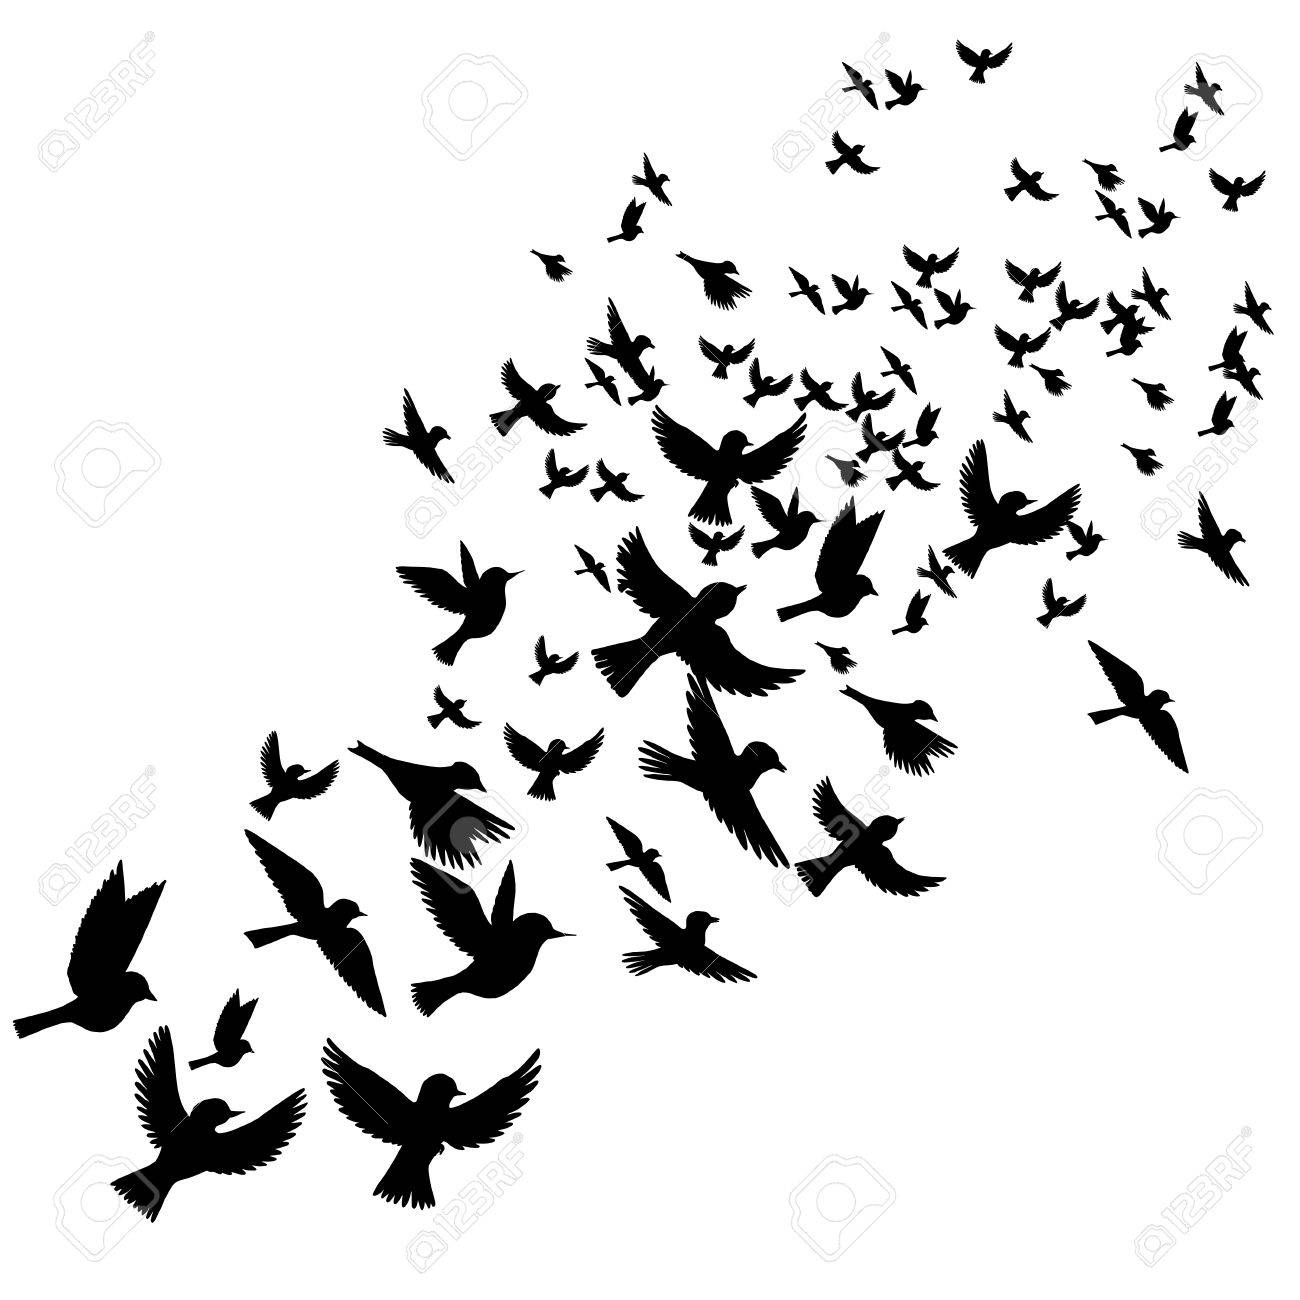 bird flock vector flying birds silhouettes hand drawn songbirds rh 123rf com bird flock silhouette vector flying bird silhouette vector free